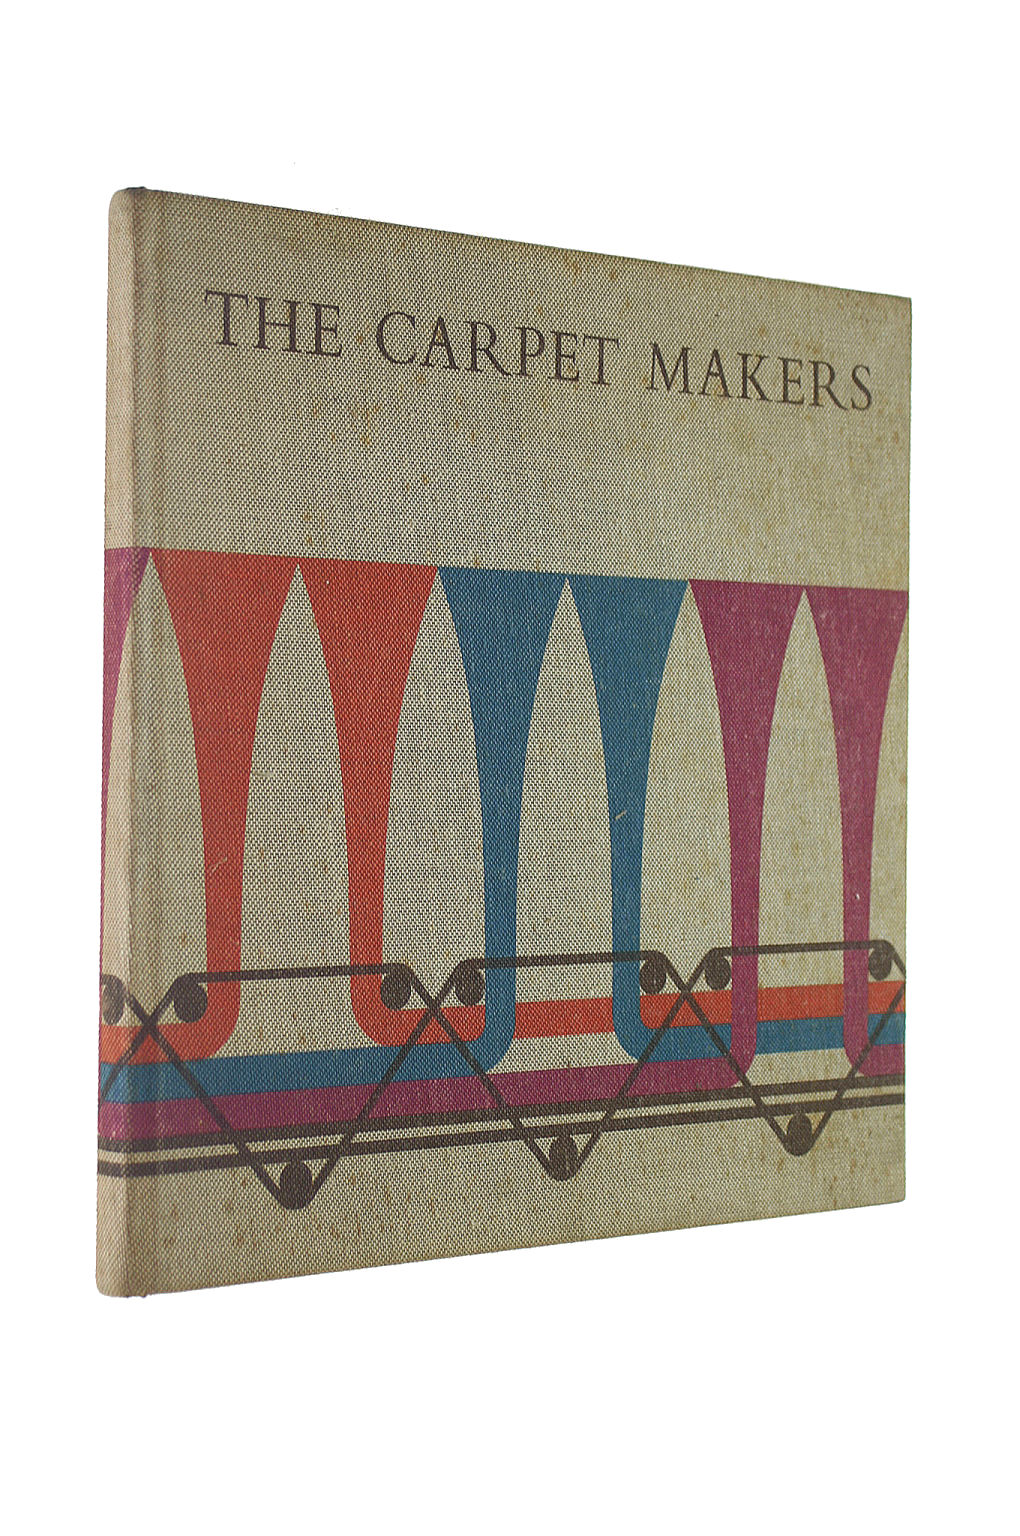 Image for The Carpet Makers: One Hundred Years Of Designing And Manufacturing Carpets Of Quality